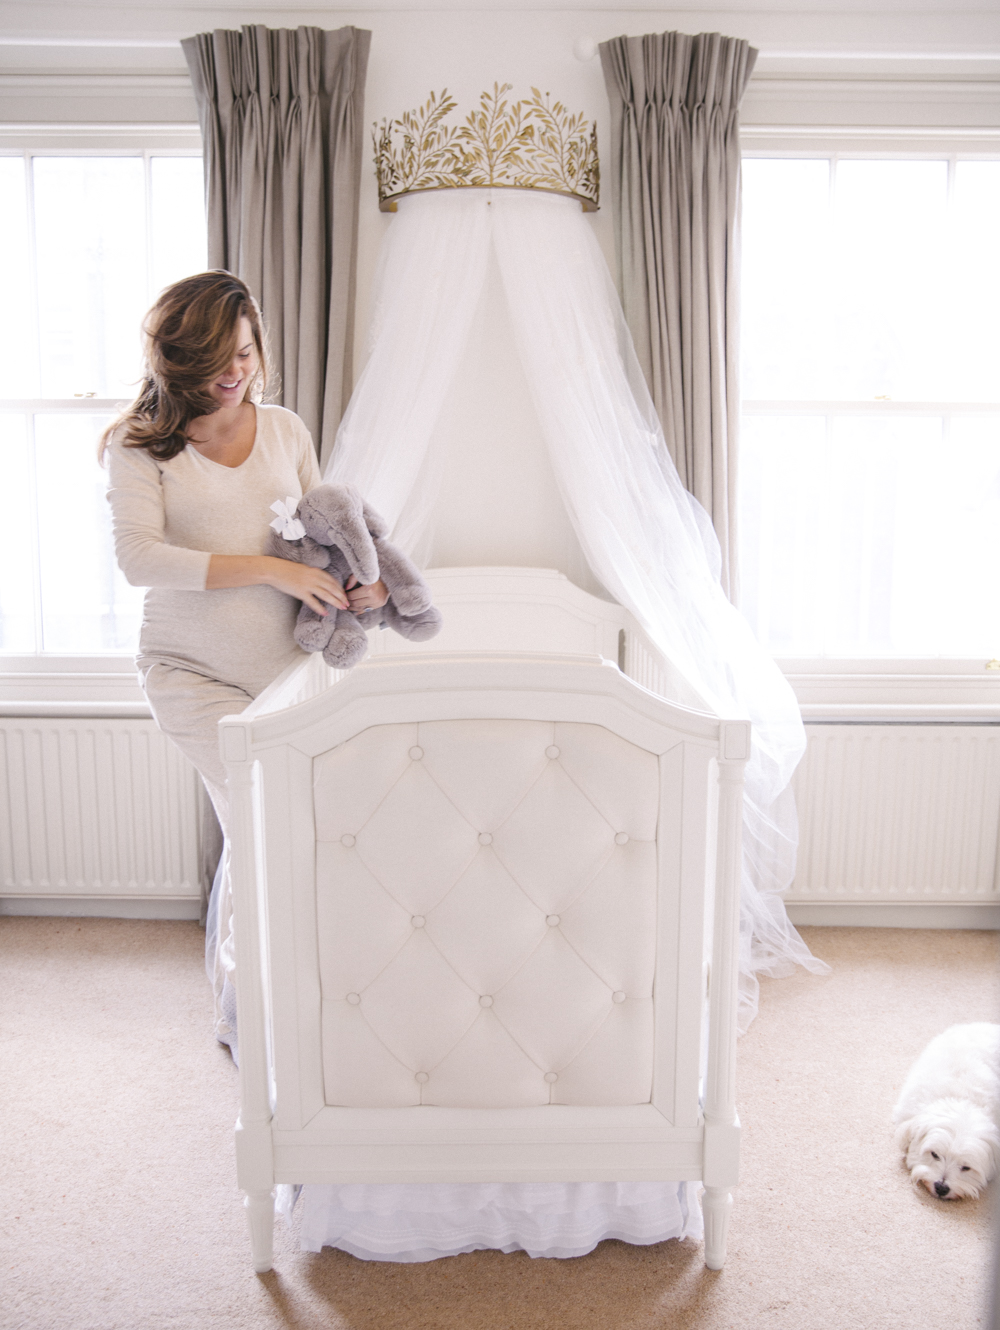 Upholstered crib in a cream and white nursery